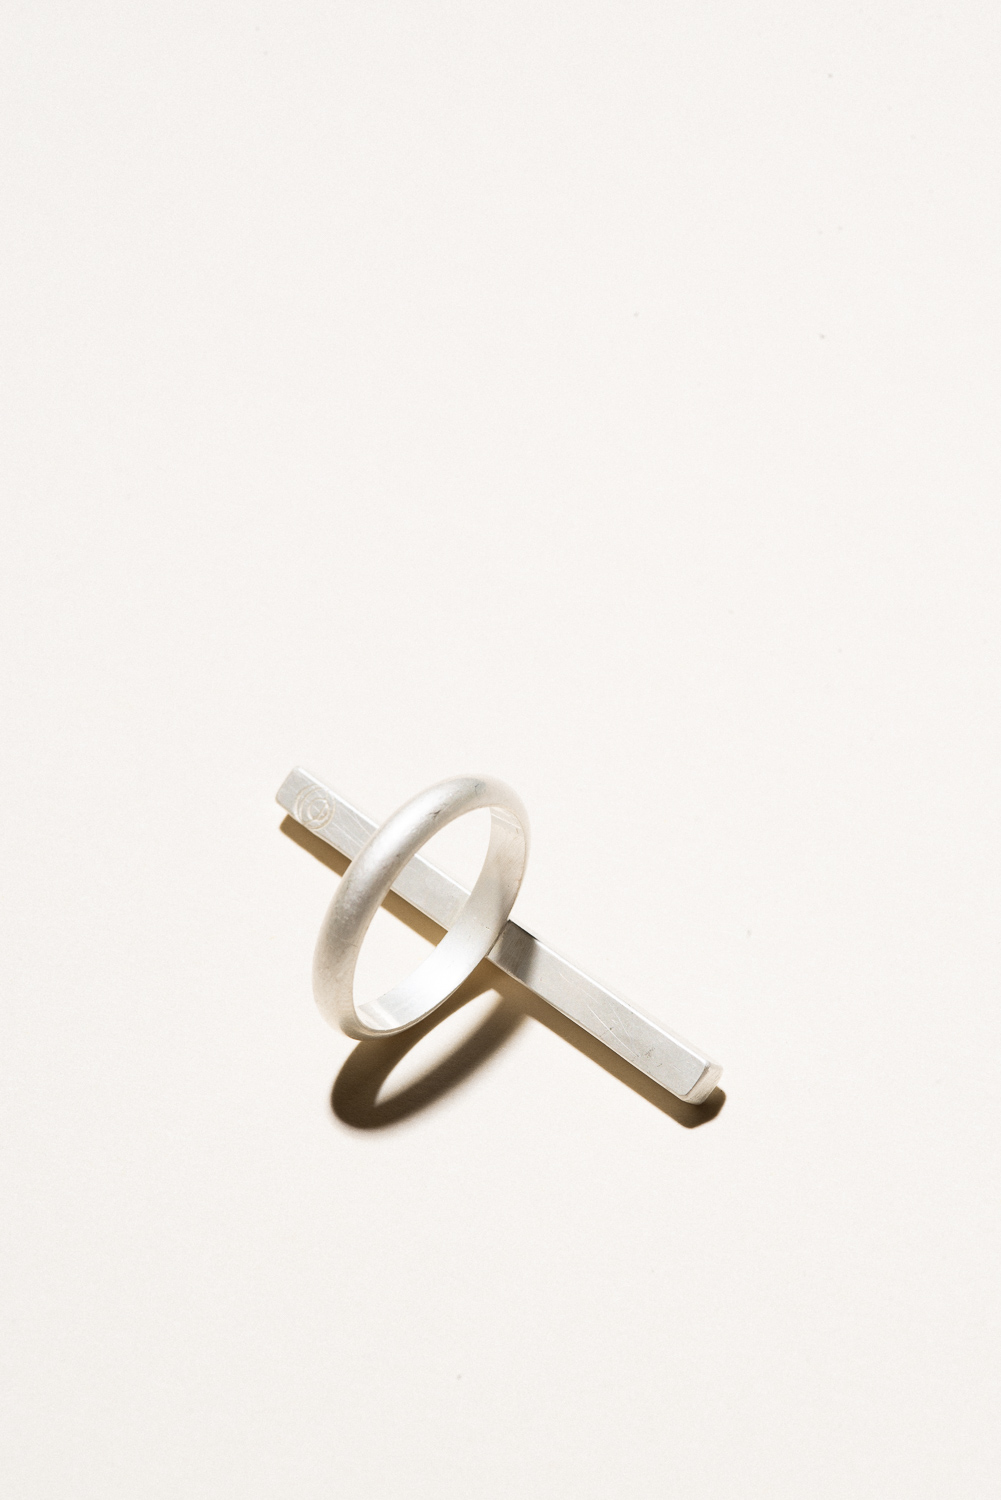 One Finger Bar Ring - 3mm wide bar and shankSterling Silver, Raw FinishHand Smithed$125